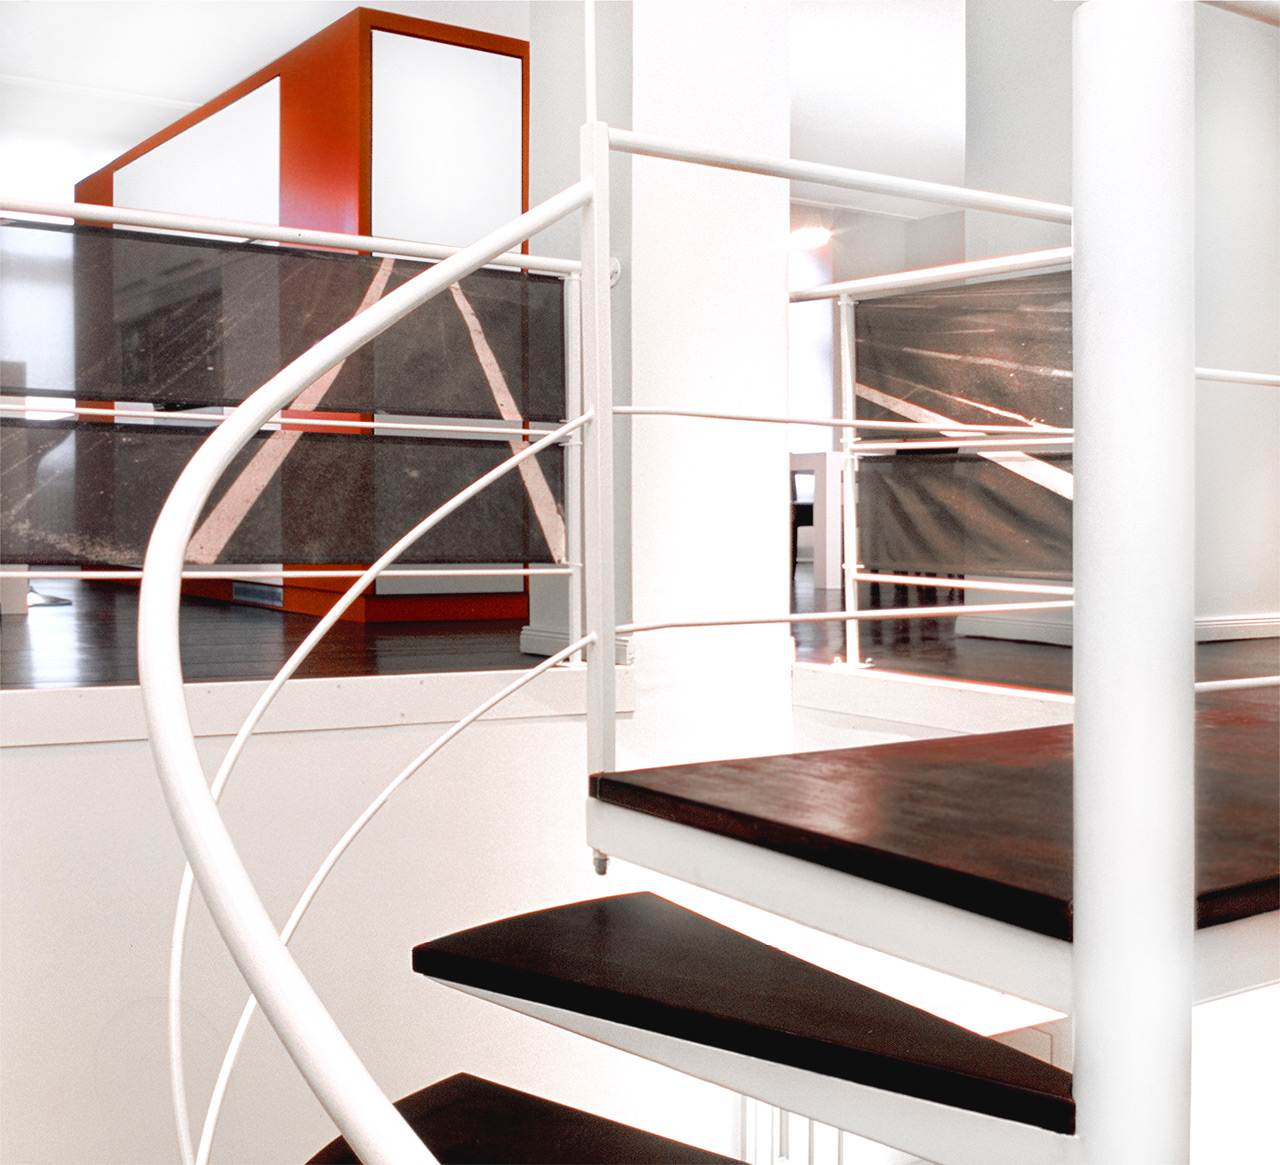 The bespoke spiral staircase; it leads from the entrance to the top floor, where kitchen and dining room are.